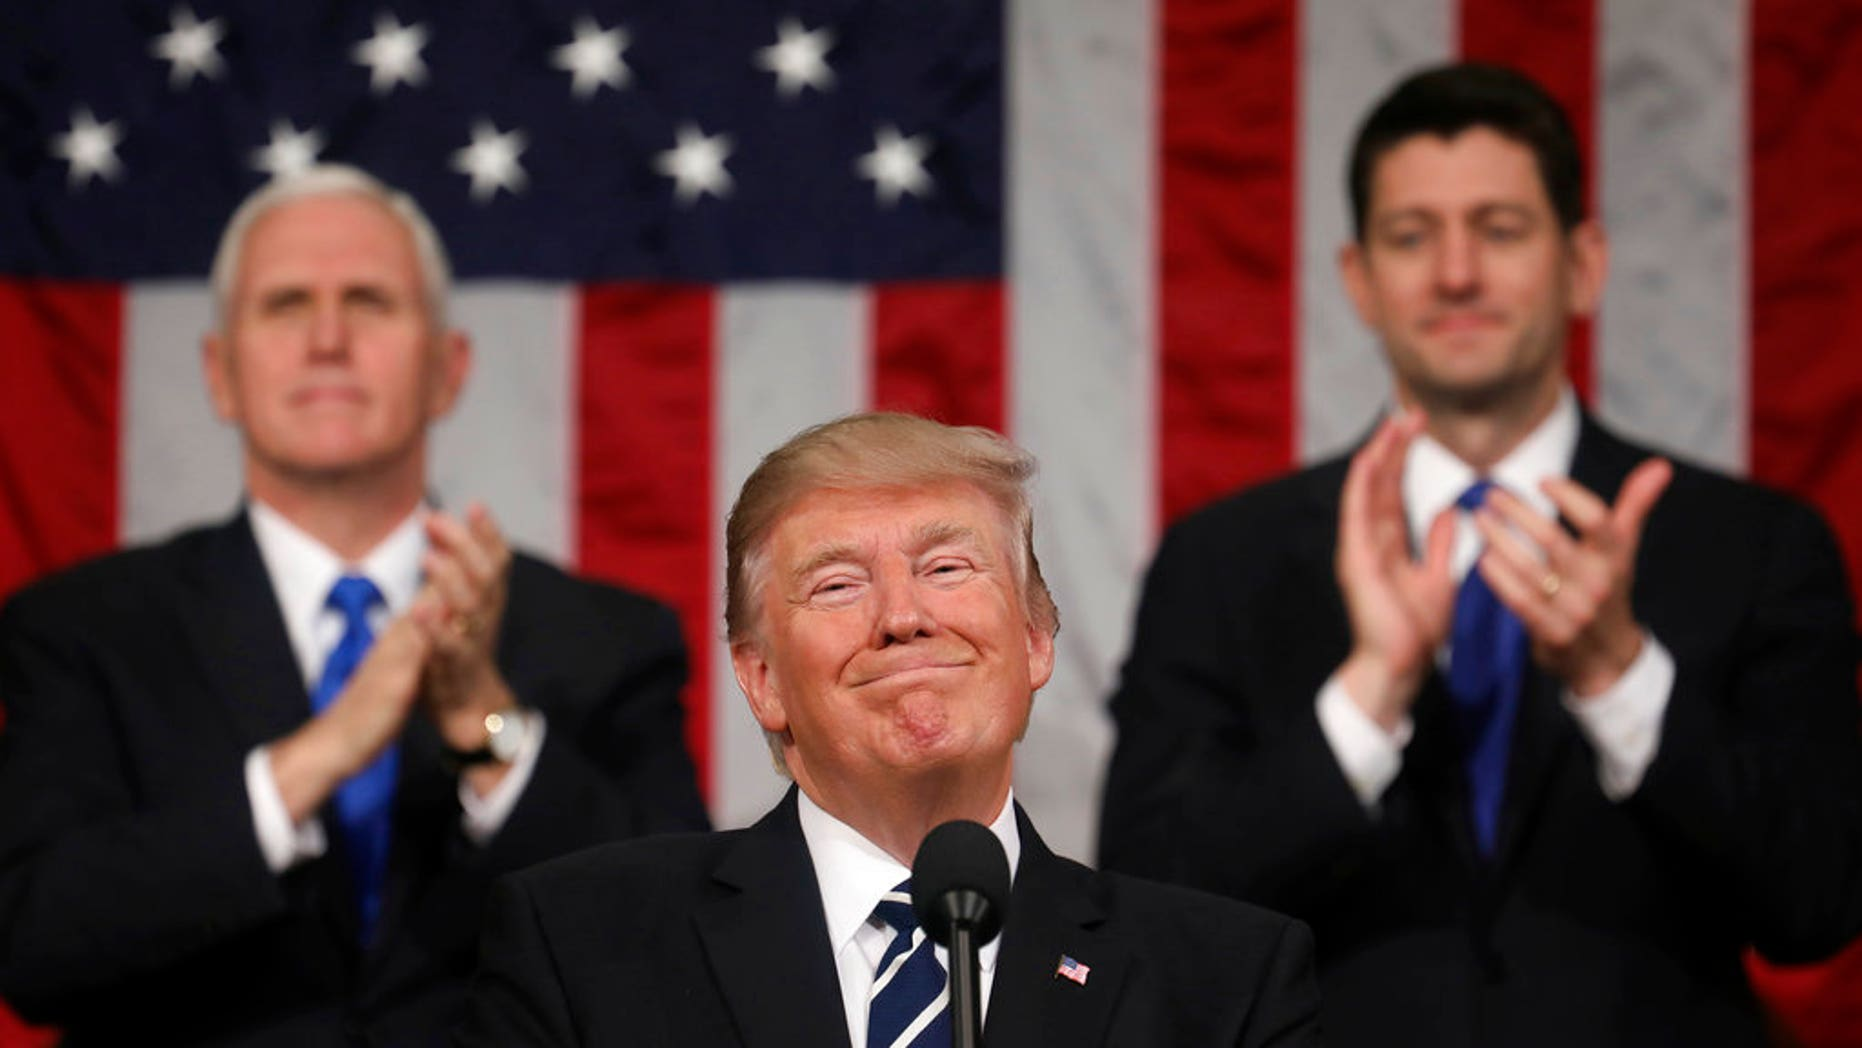 FILE - In this Feb. 28, 2017, file photo, President Donald Trump addresses a joint session of Congress on Capitol Hill in Washington, as Vice President Mike Pence and House Speaker Paul Ryan of Wis., applaud. President Trump's first state of the union speech will carry more suspense than most. (Jim Lo Scalzo/Pool Image via AP, File)